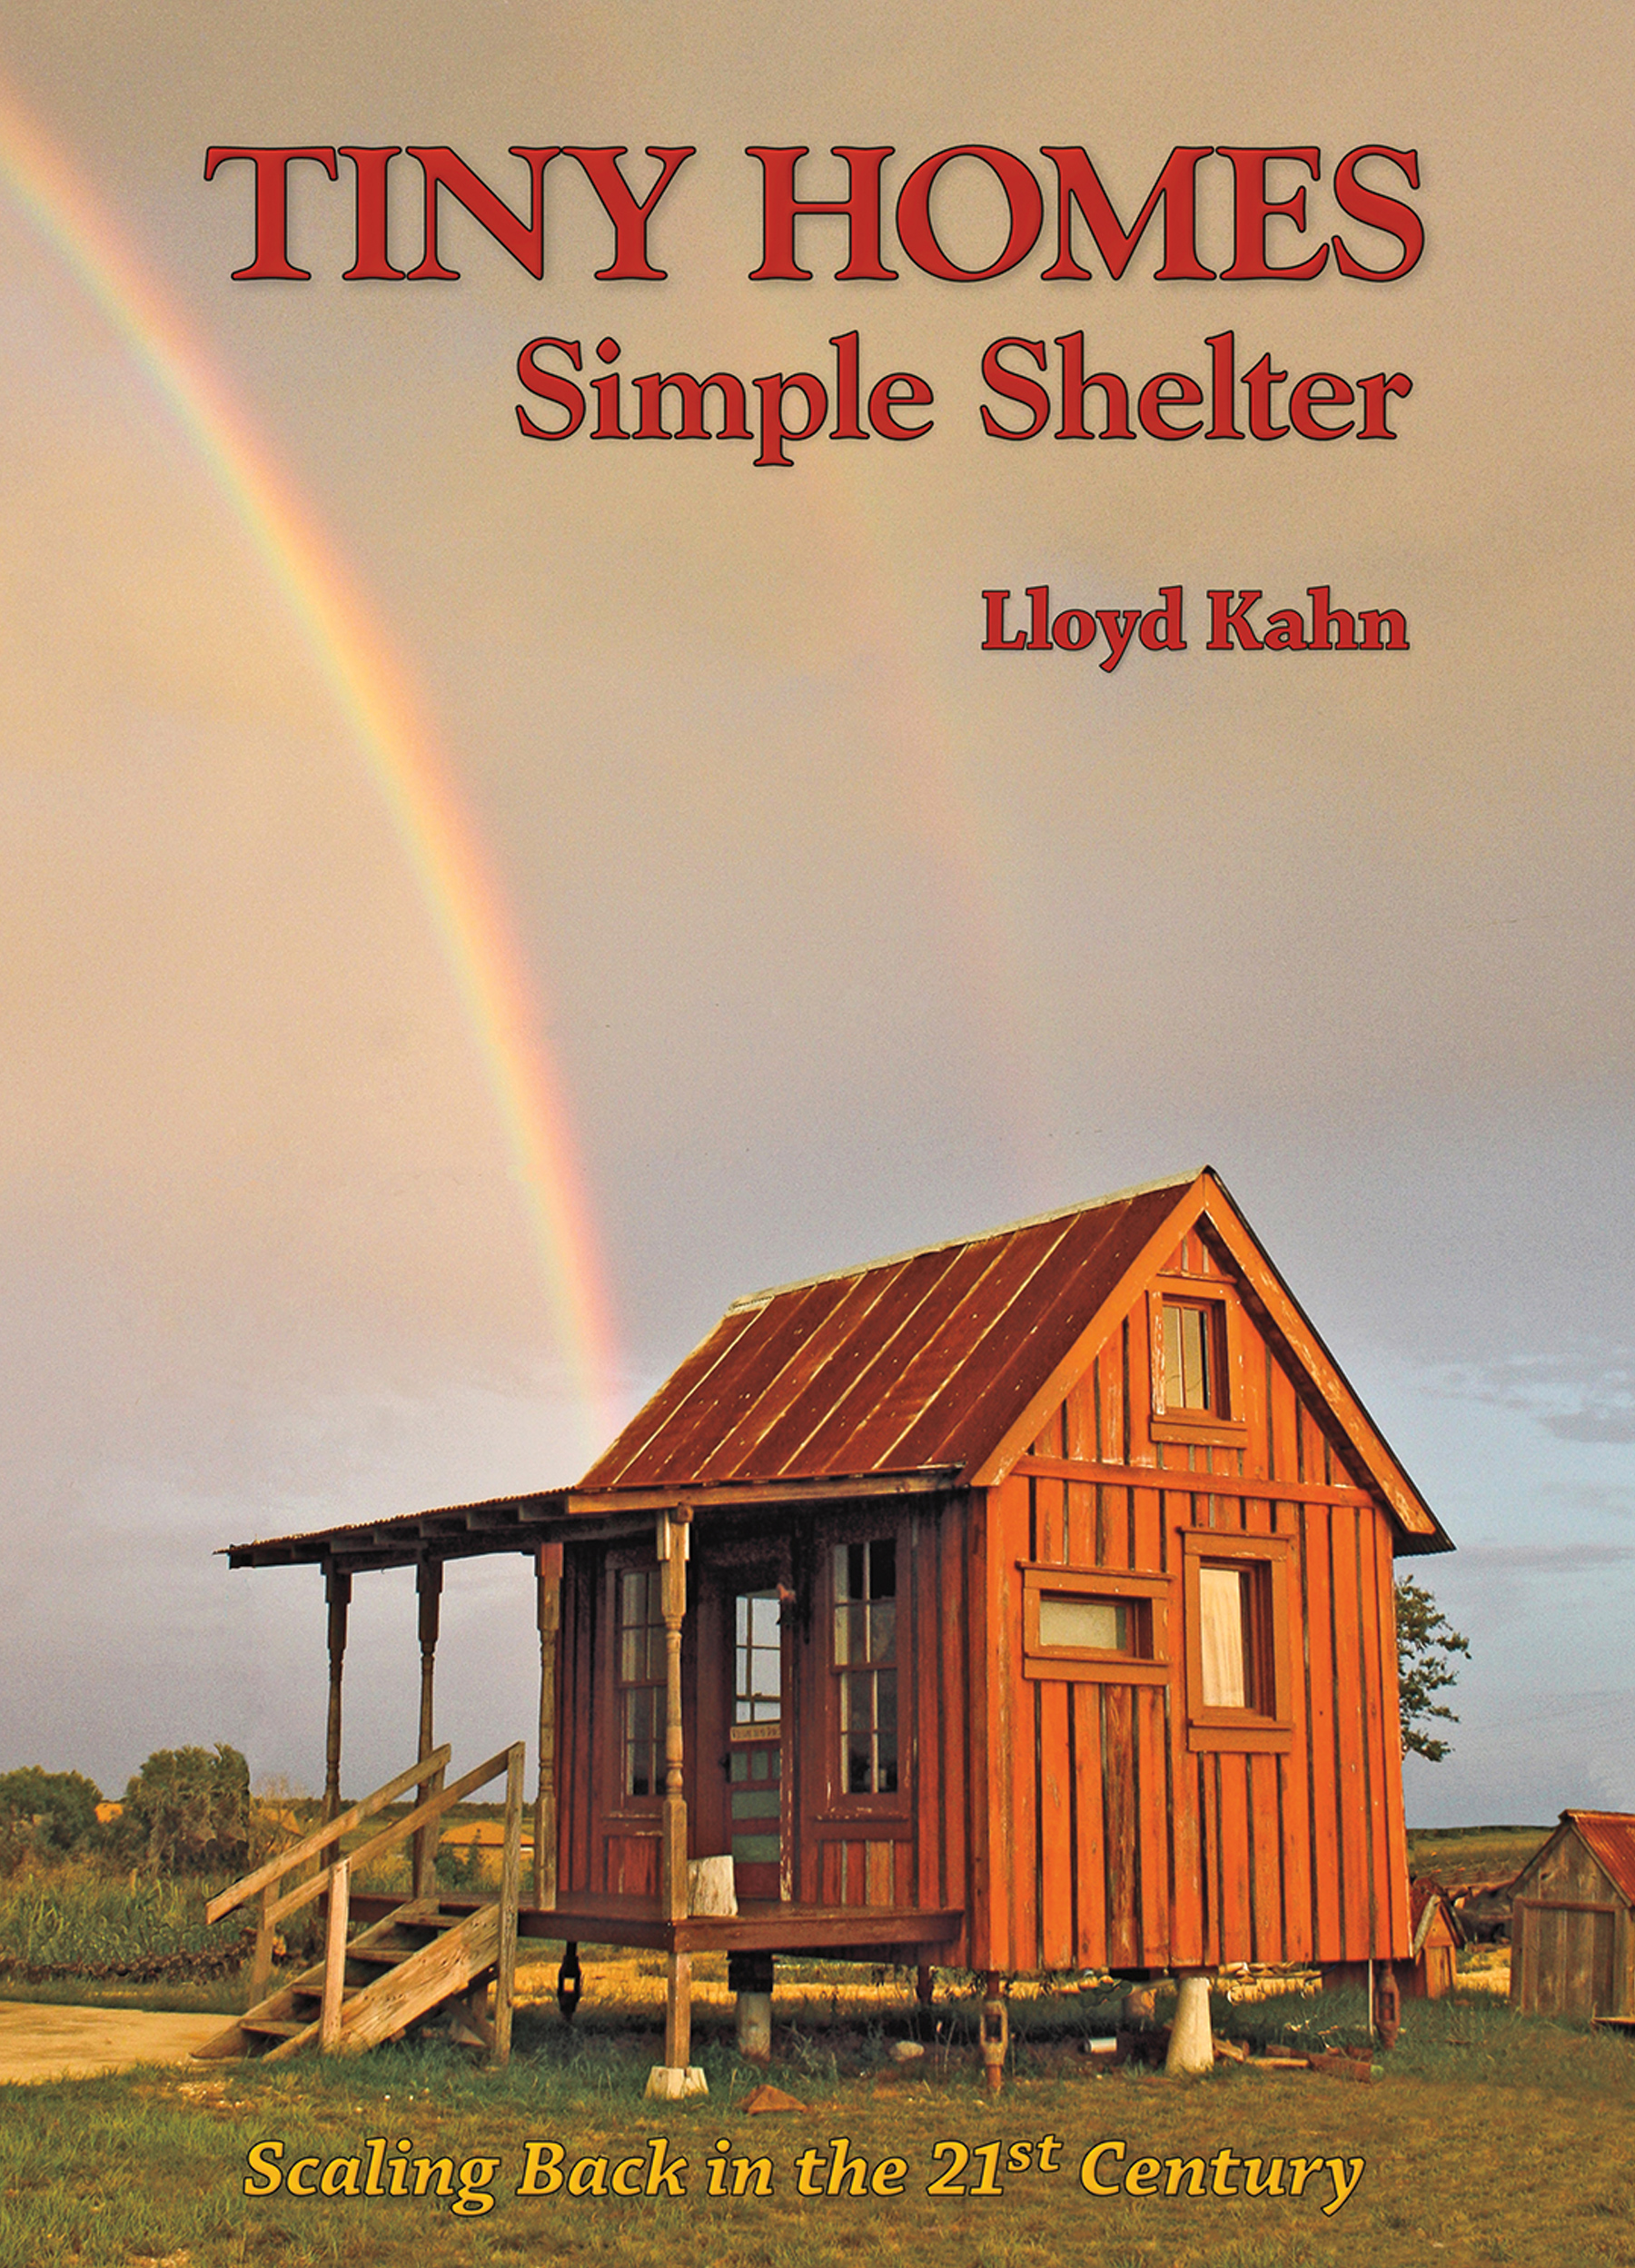 Tiny Homes: Simple Shelter — Shelter Publications